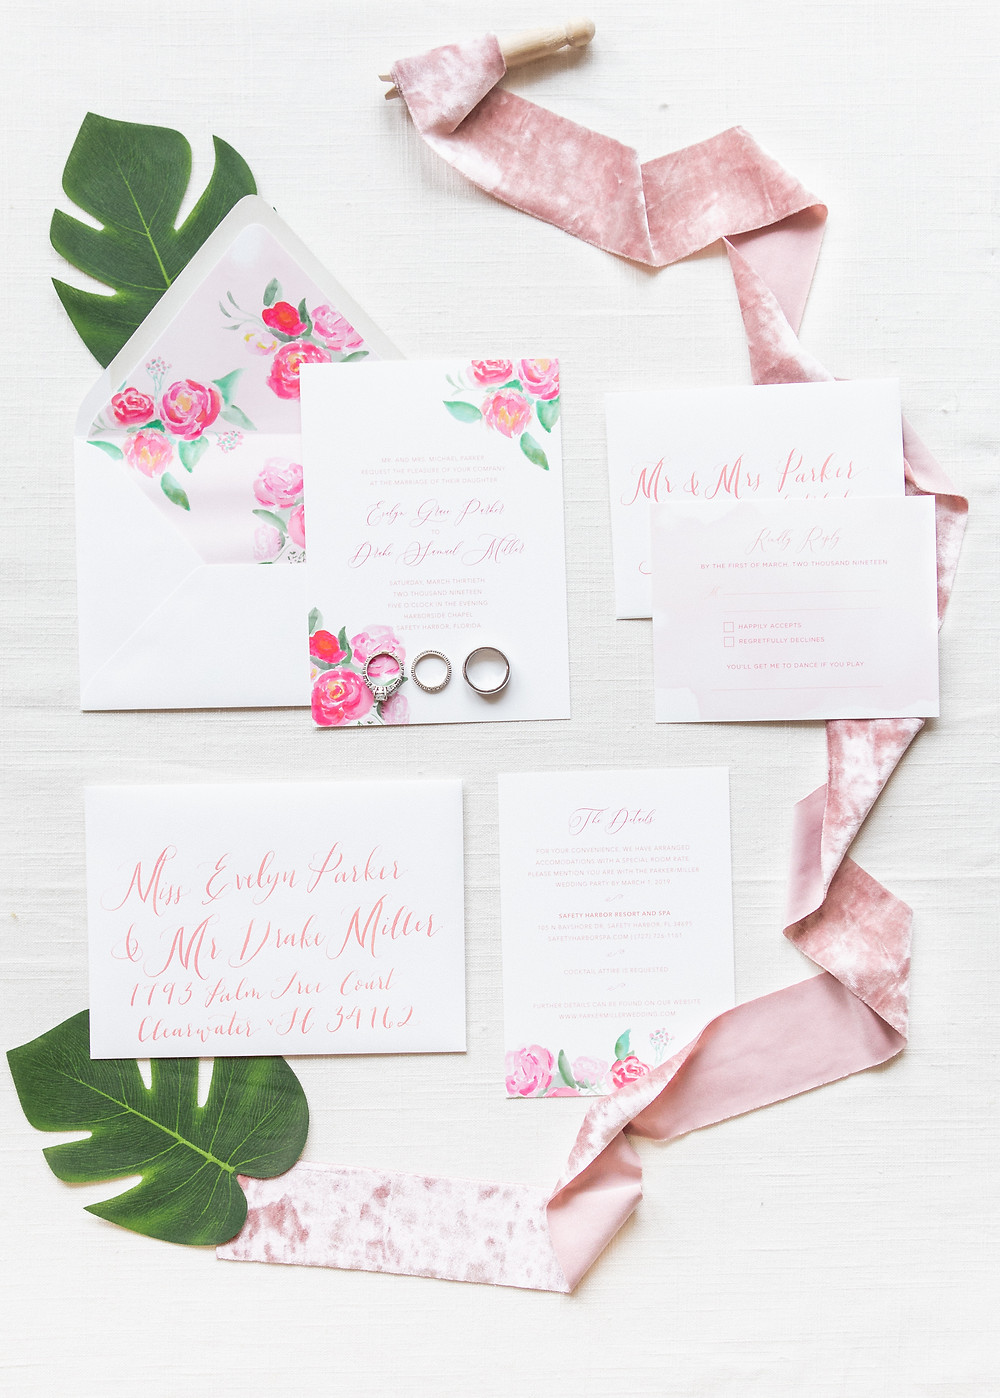 Gorgeous custom wedding invitation suite with pink, tropical watercolor florals.